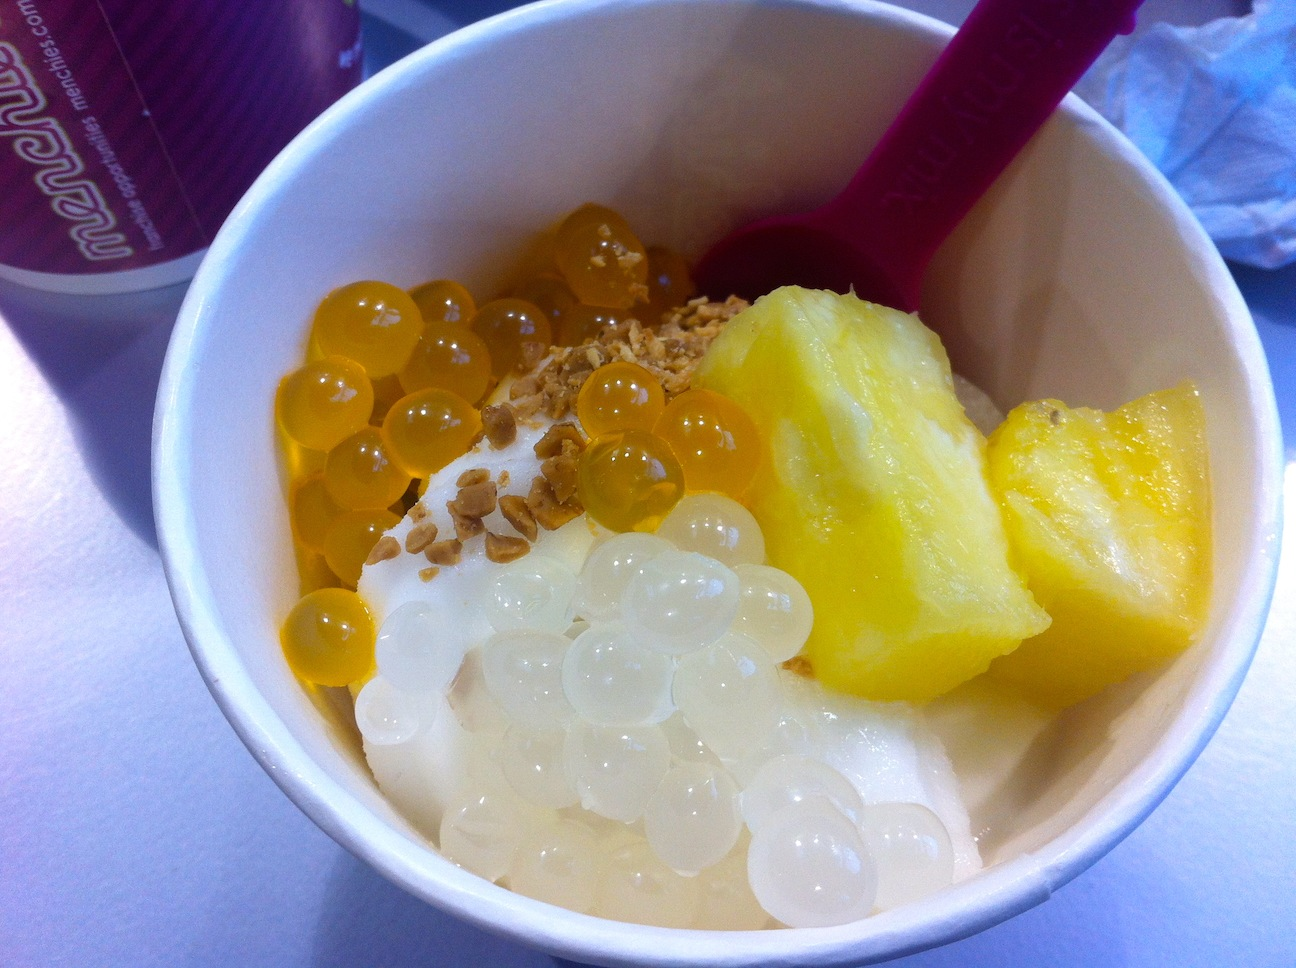 went with the pina colada sorbet and topped it with pineapple, two ...